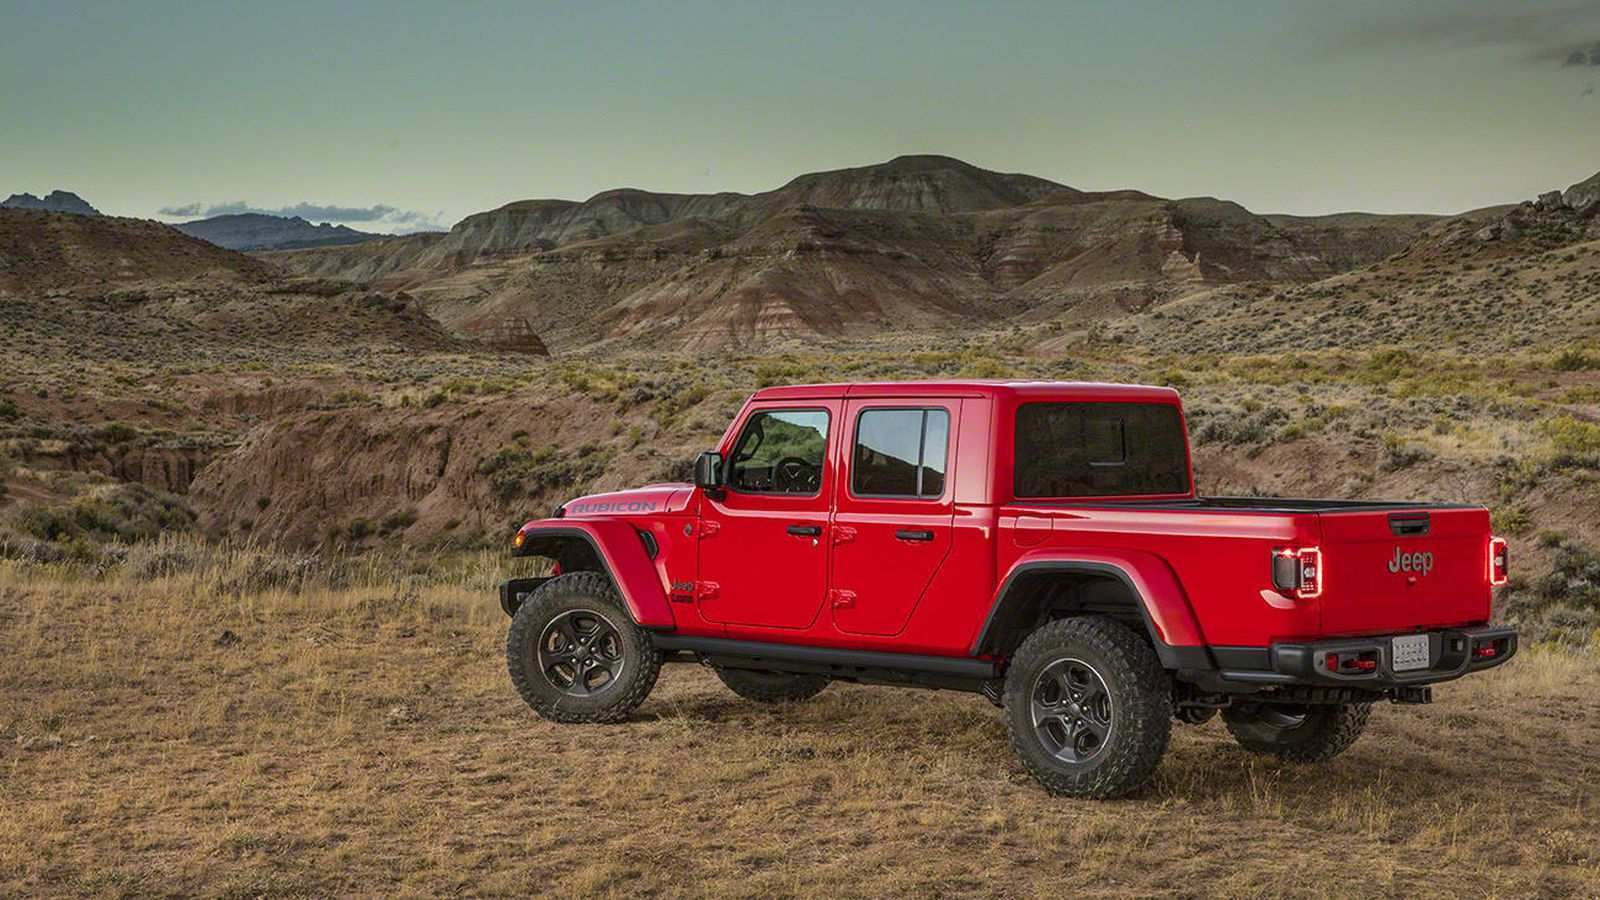 44 Best 2020 Jeep Wrangler Pickup Truck Price Design And Review